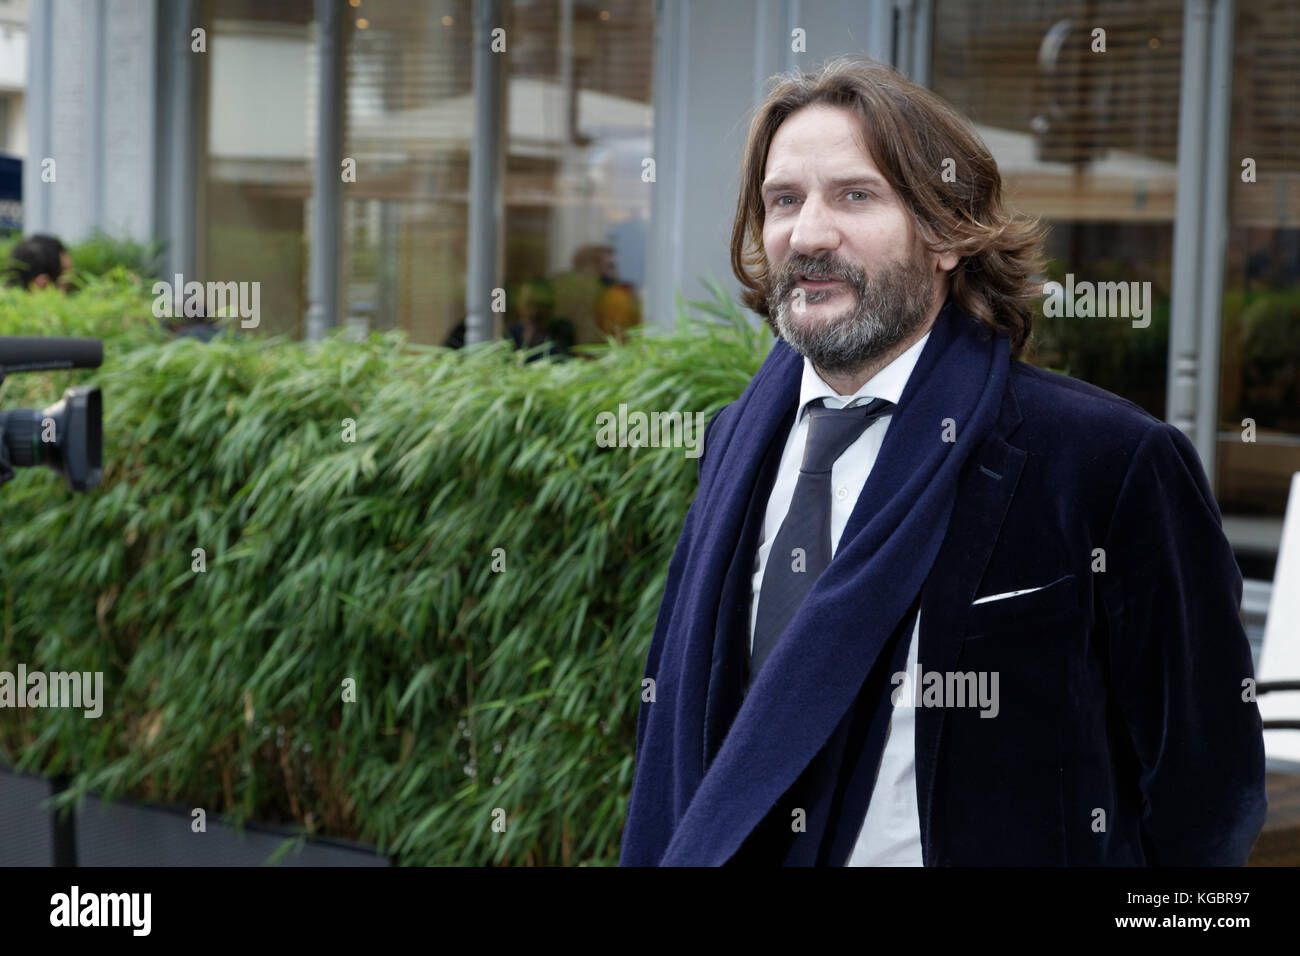 Paris, France. 6th Nov, 2017. Frédéric Beigbeder attends the Prix Goncourt at the Drouan restaurant on - Stock Image